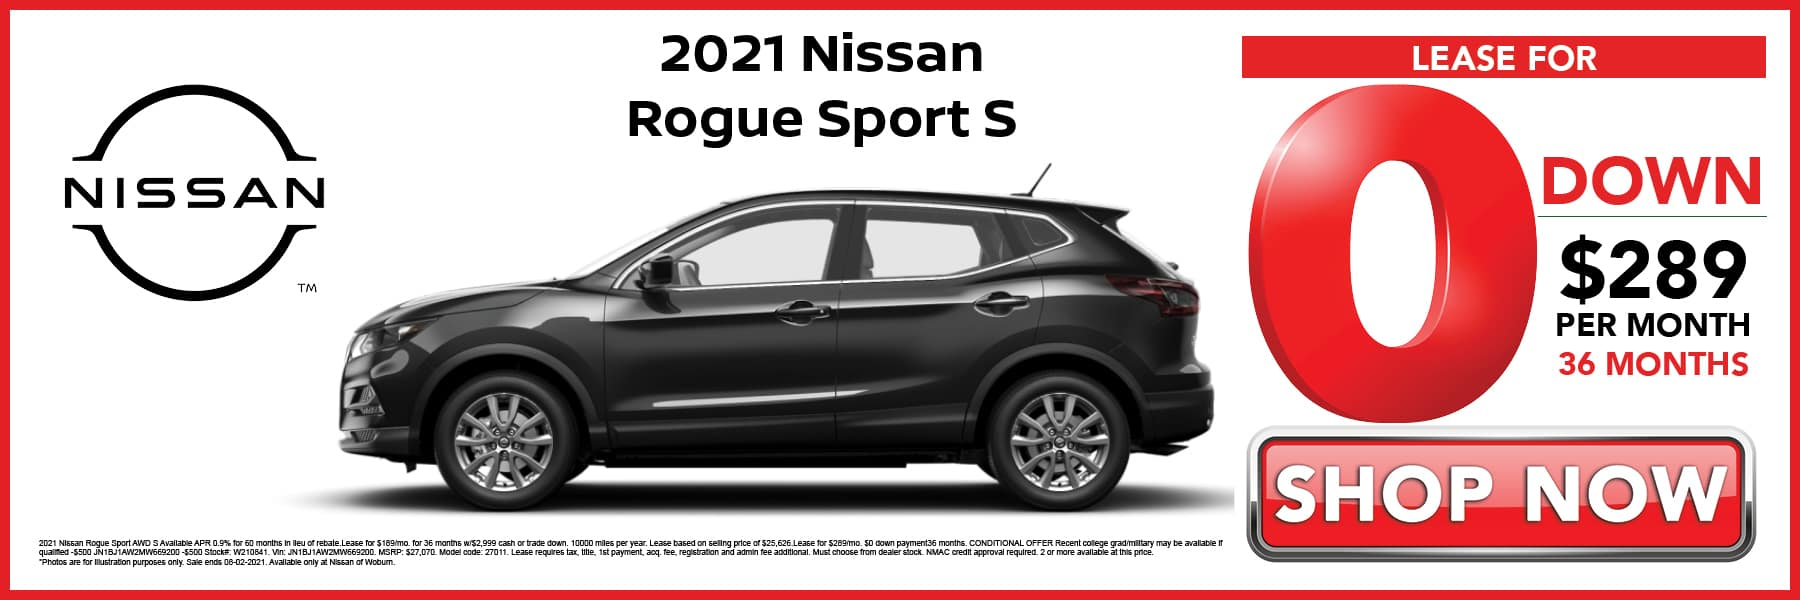 2021 Nissan Rogue Sport S Lease for 0 Down then $289 per Month for 36 Months